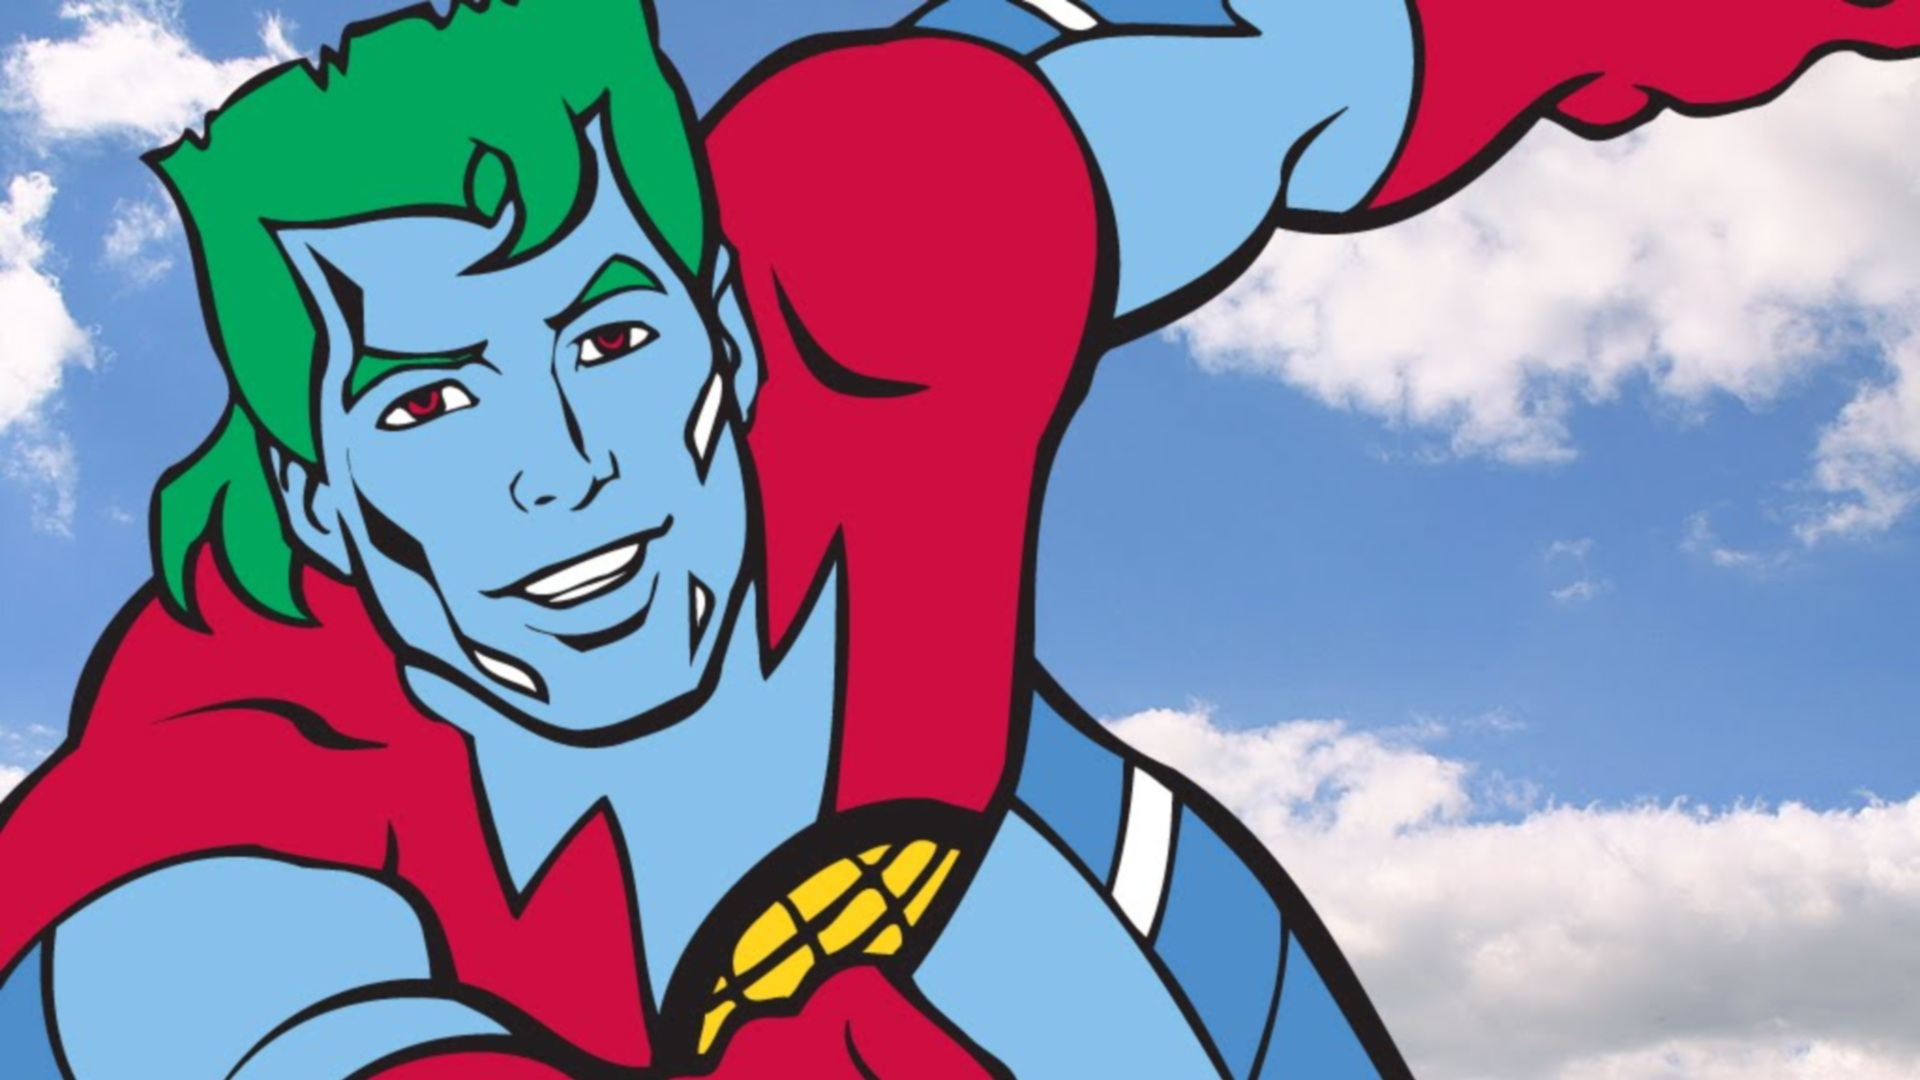 Captain Planet and the Planeteers HD Wallpaper Background Image 1920x1080